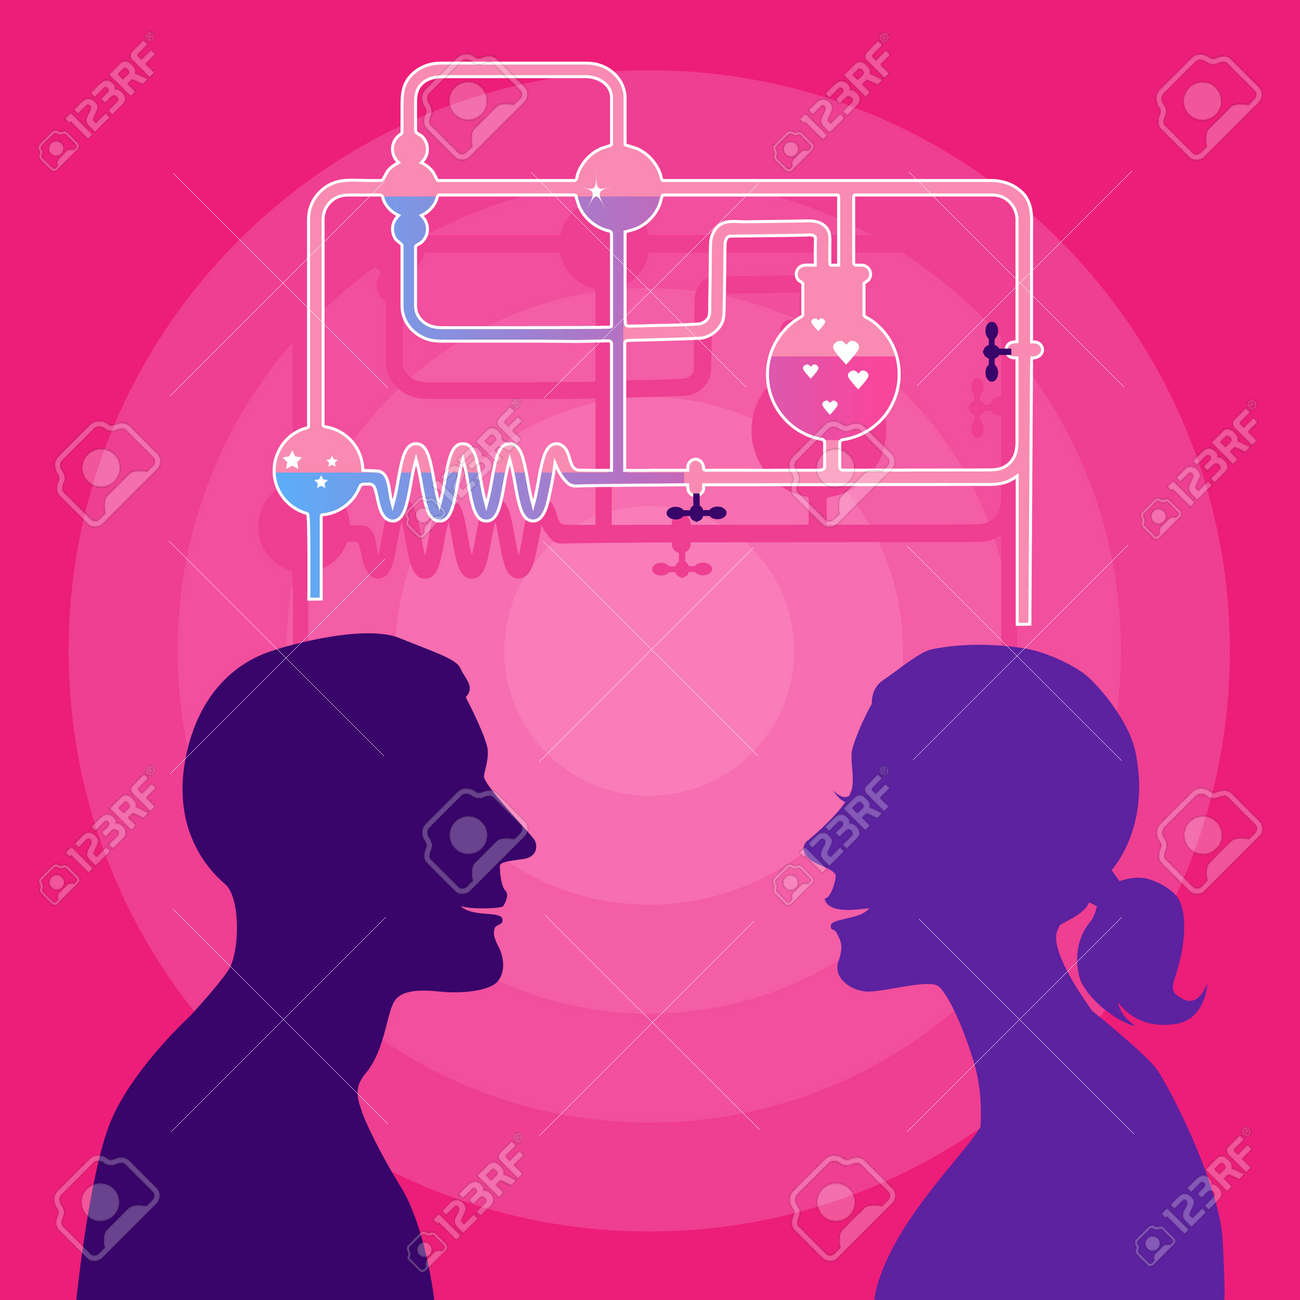 Love Chemistry Profile Of Man And Woman With A Chemistry Set